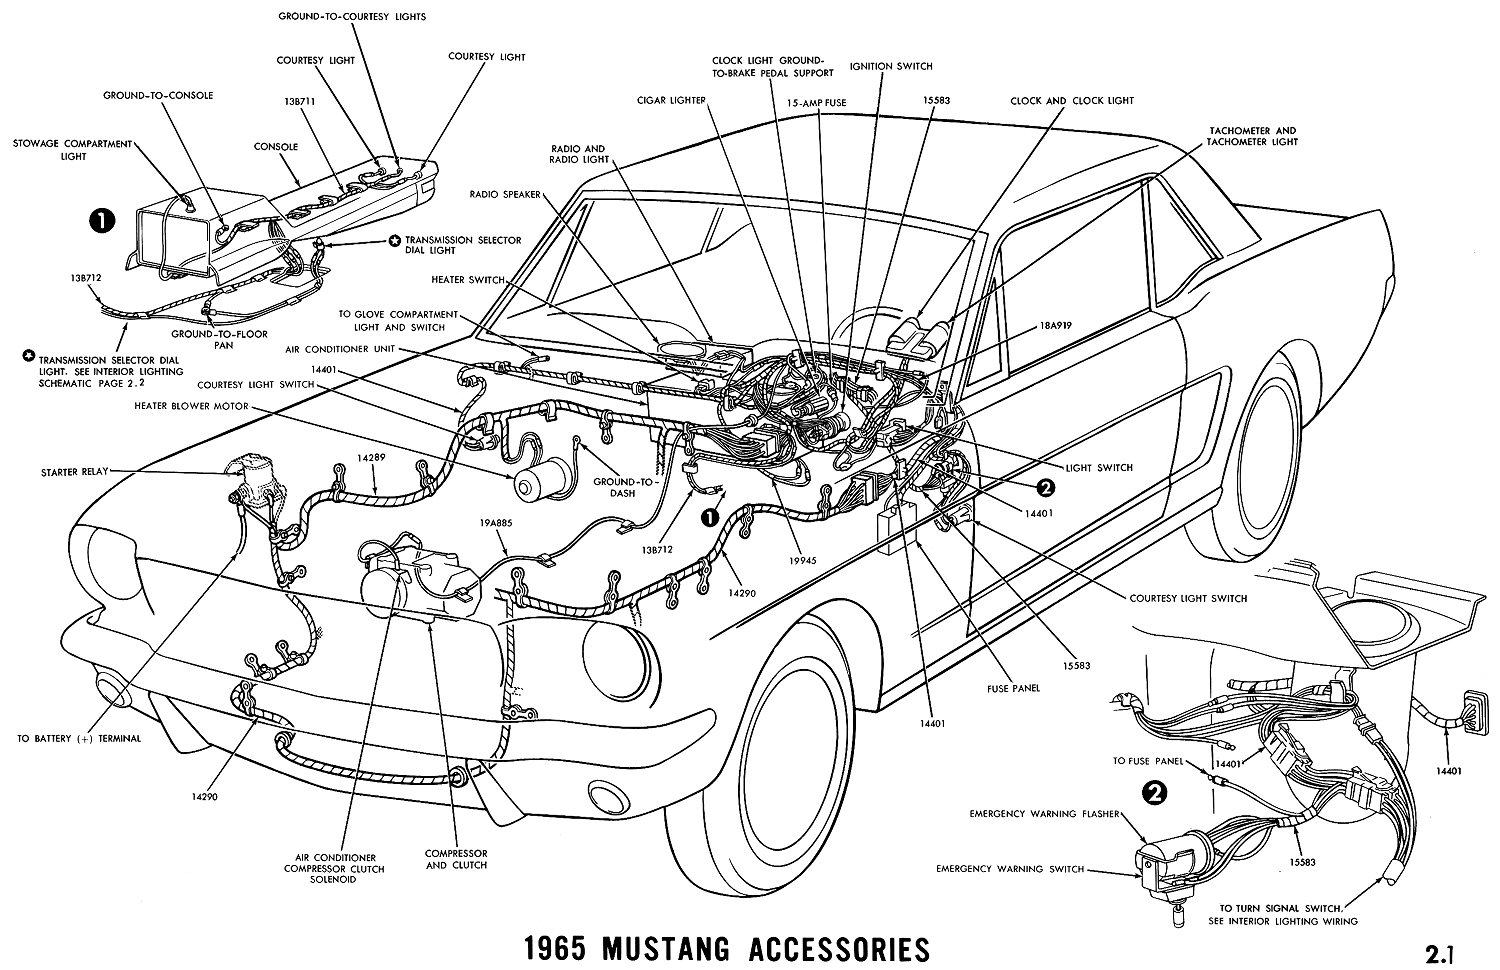 1965h 1965 mustang wiring diagrams average joe restoration 1965 mustang alternator wiring diagram at aneh.co